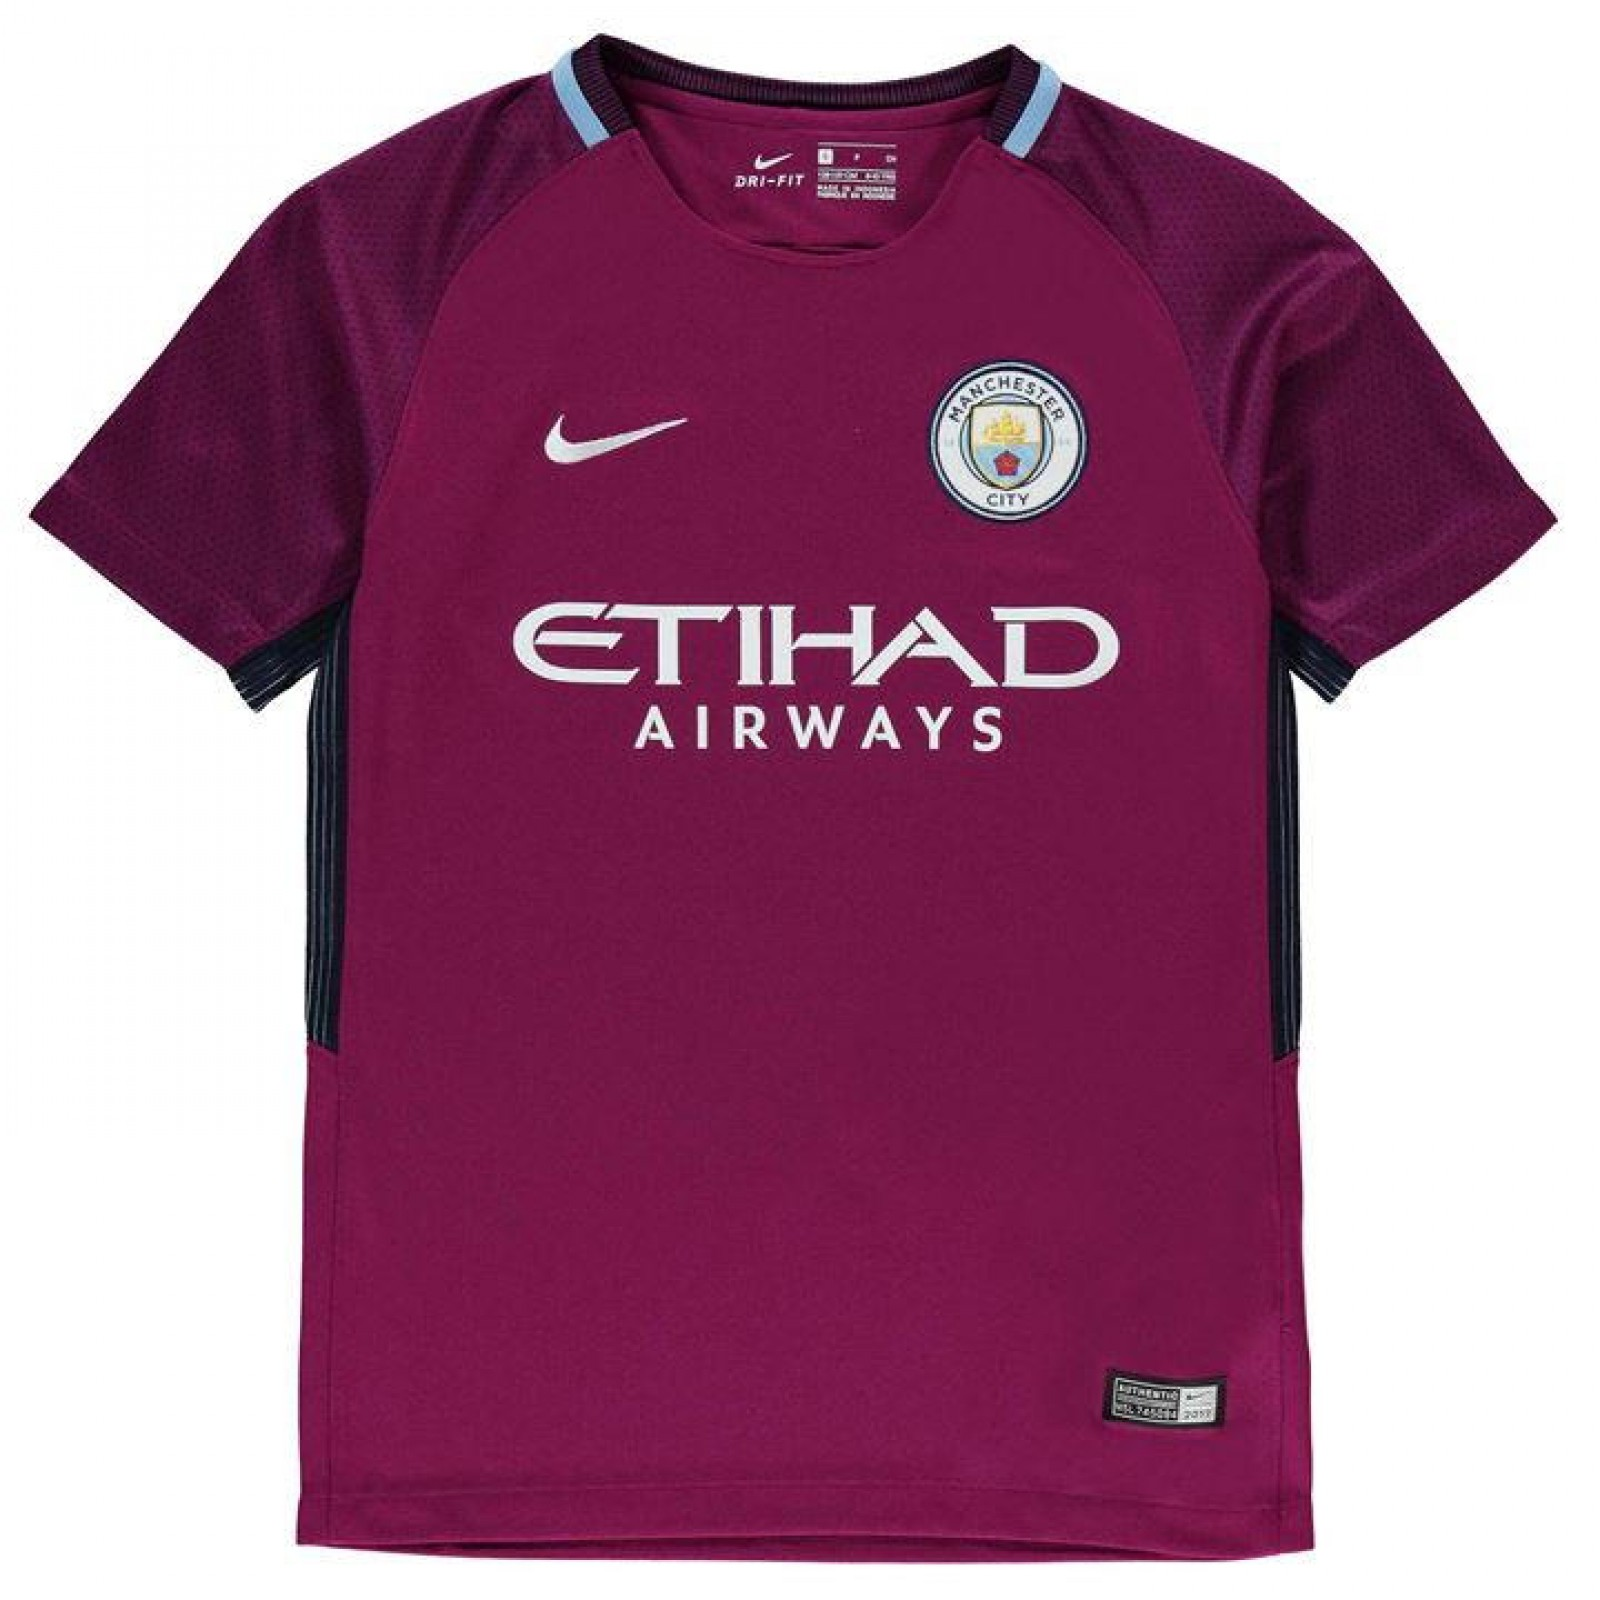 new product 41fb5 7ca61 Childrens Manchester City Away Football Kit | Get FREE Shirt ...